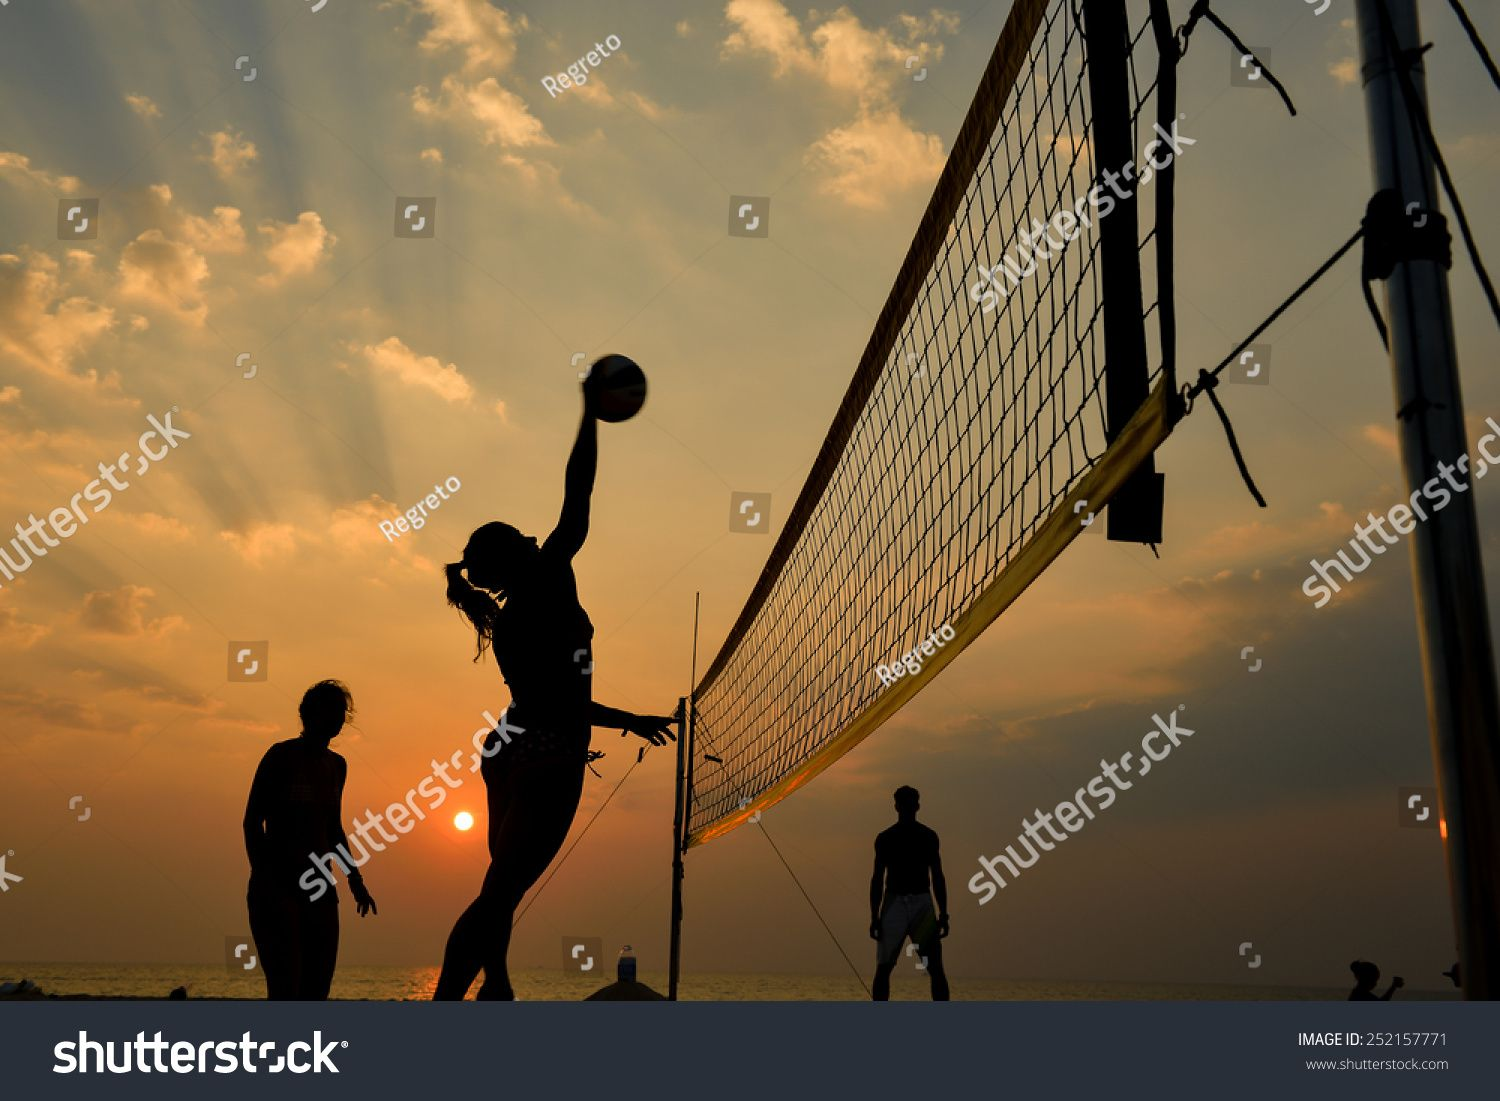 Beach Volleyball Silhouette Sunset Motion Blurred Royalty Free Image Photo In 2020 Volleyball Silhouette Beach Volleyball Motion Blur